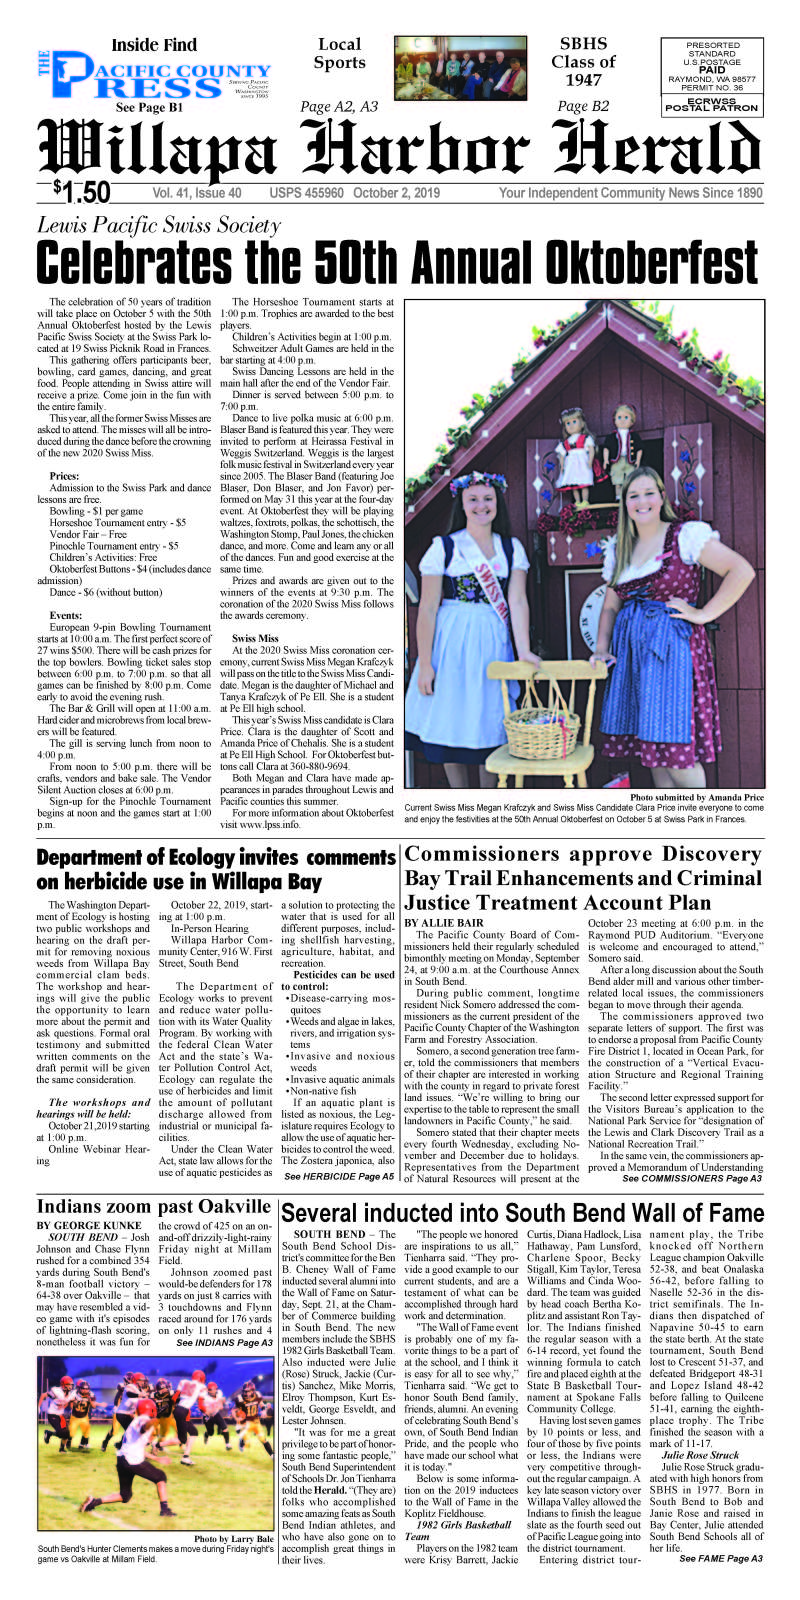 October 2, 2019 Willapa Harbor Herald and Pacific County Press